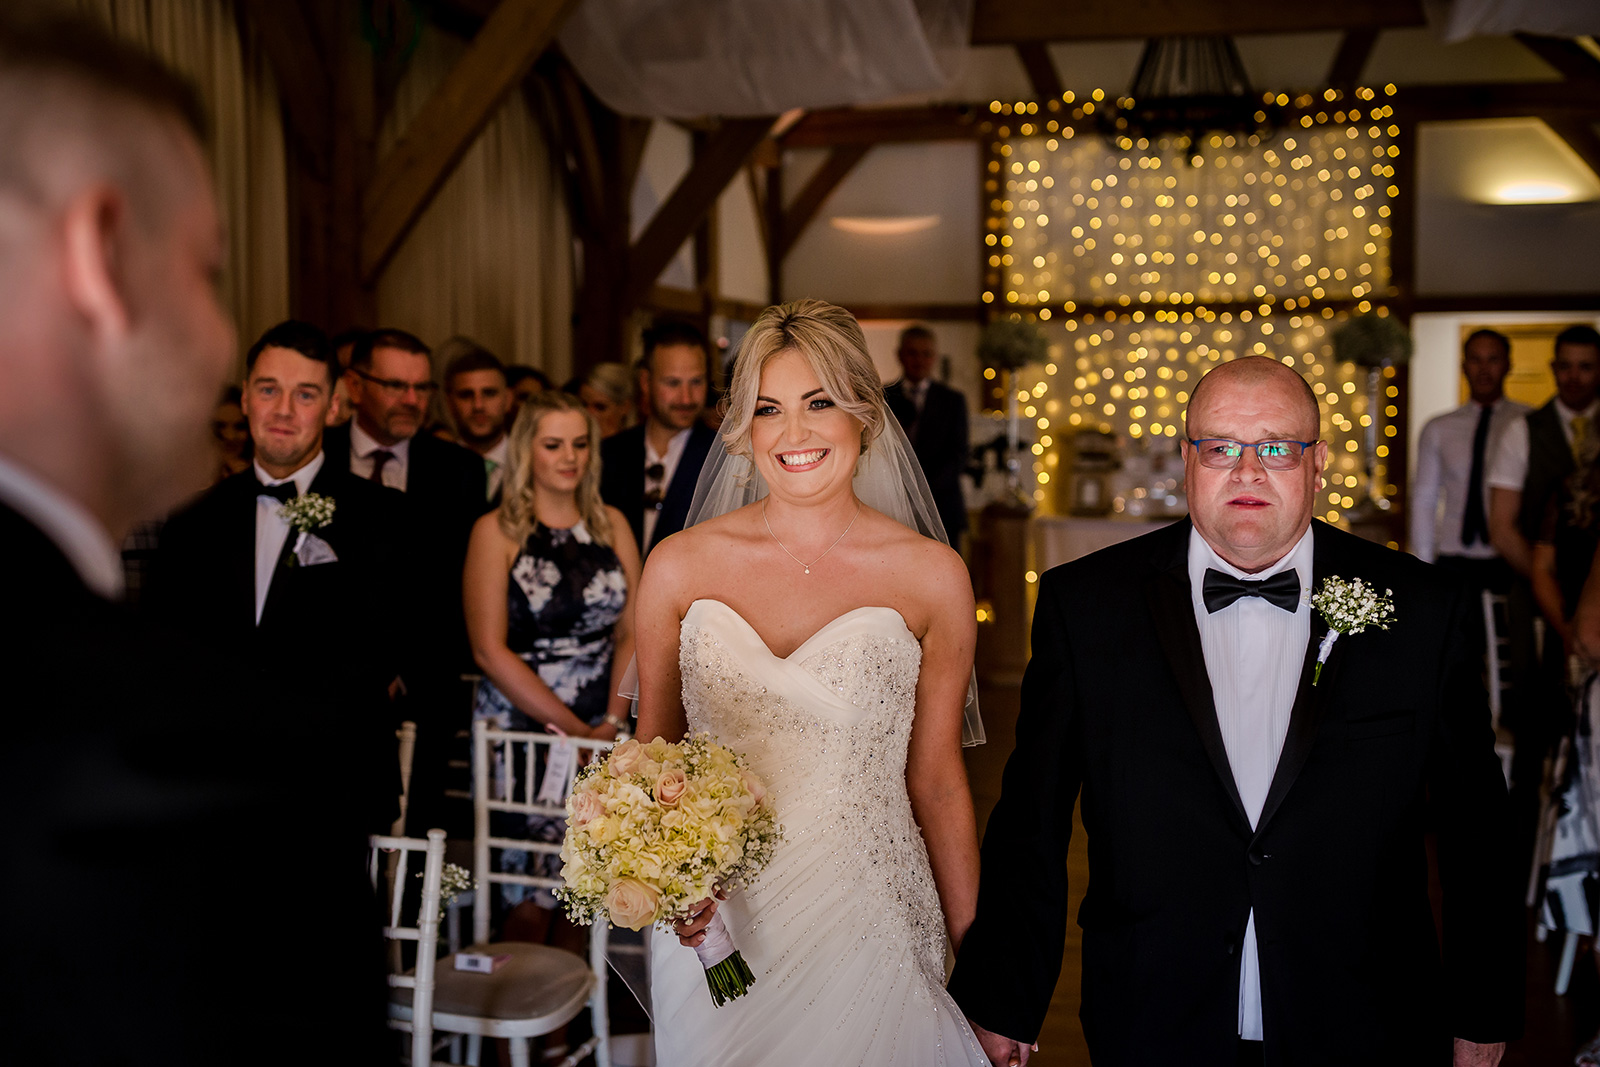 The bride arrives with her dad during a Sandhole Oak Barn Wedding Ceremony